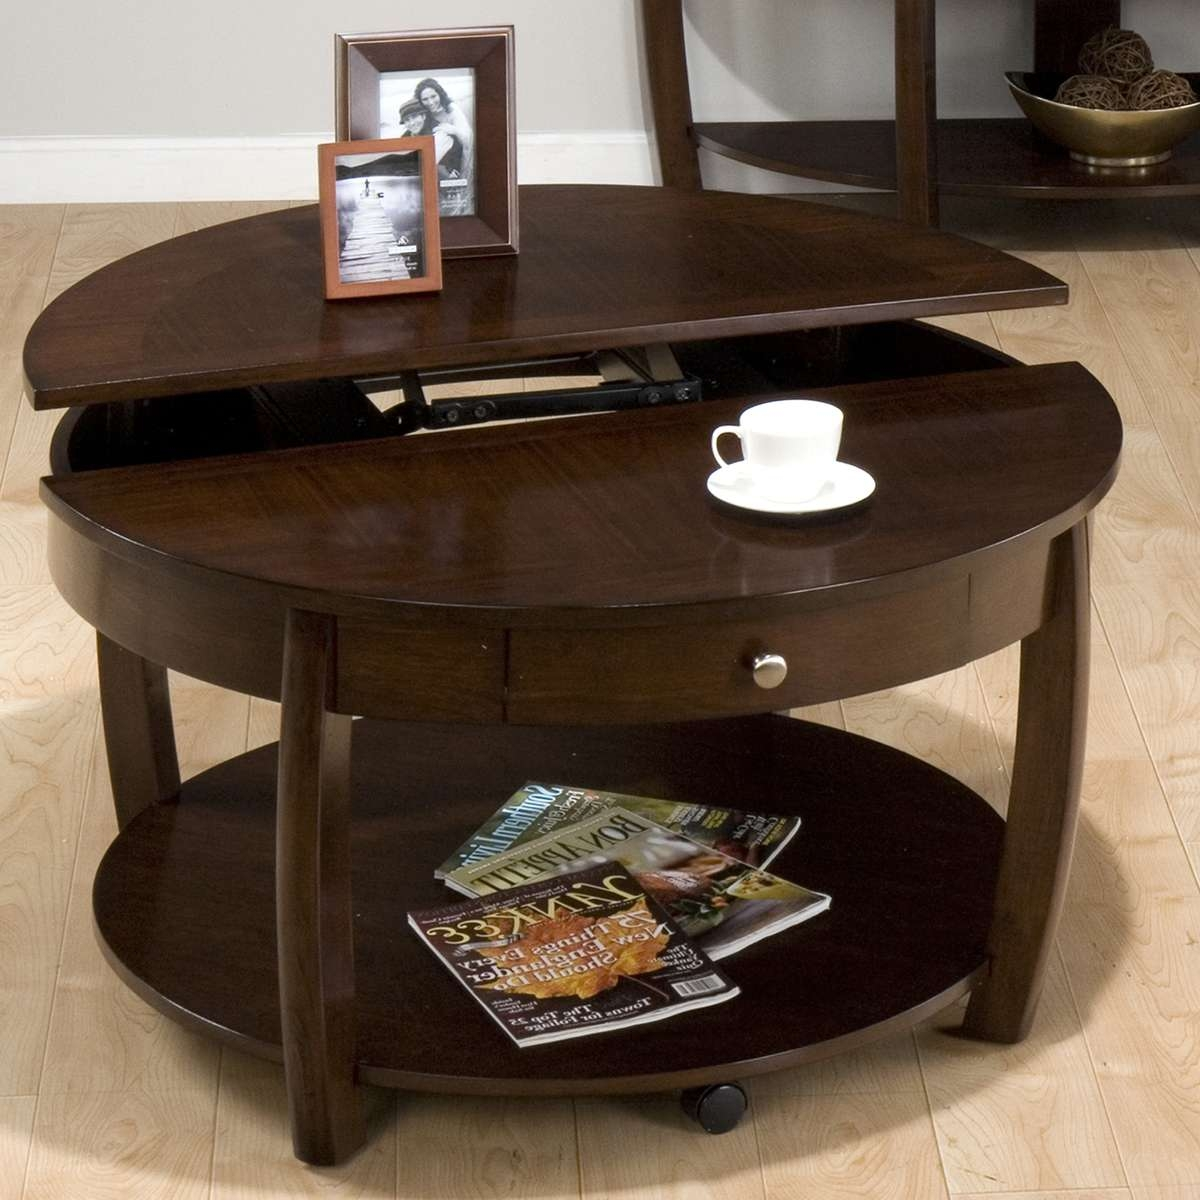 Fashionable Raisable Coffee Tables With Amazing Lift Coffee Tables (View 9 of 20)